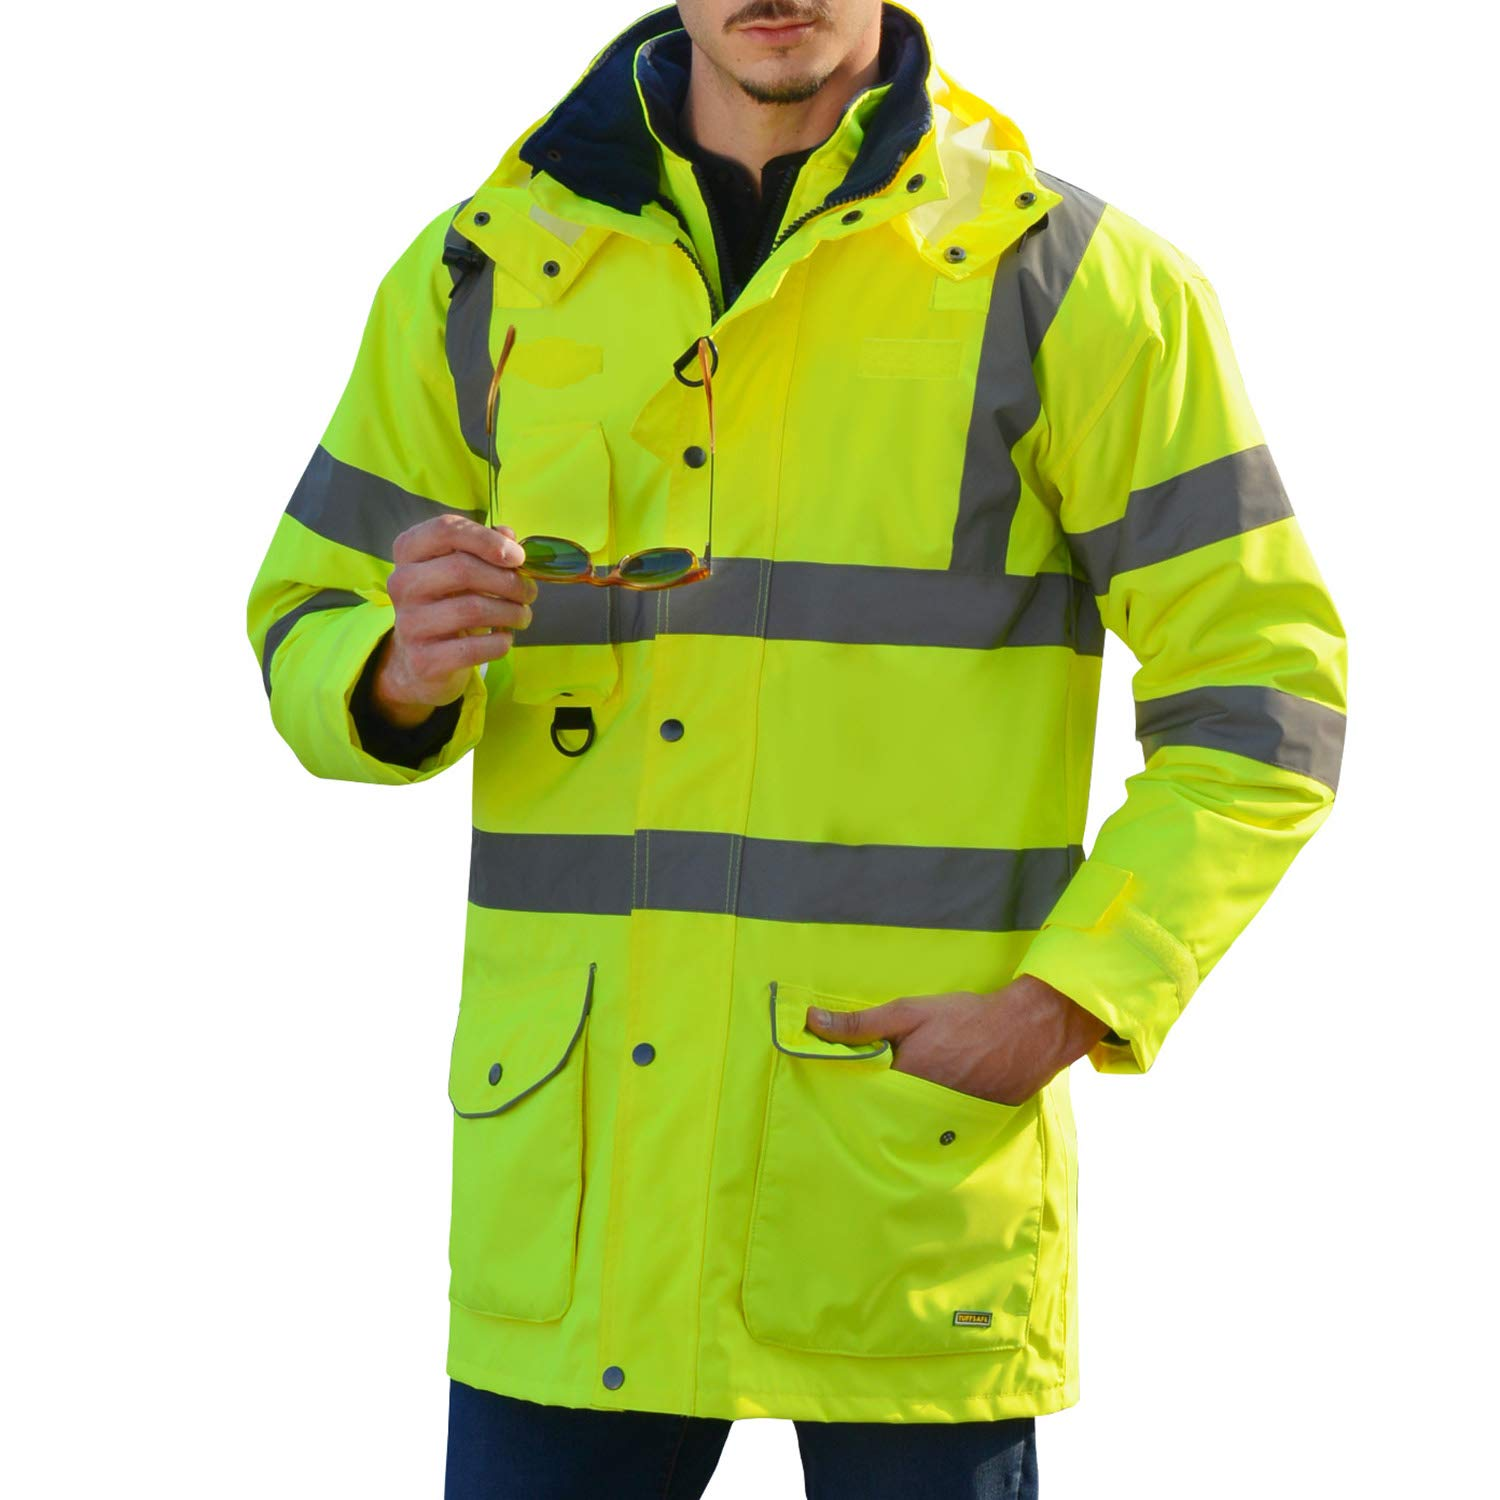 Holulo Waterproof Neon Yellow 7-in-1 Reflective Class 3 Safety Parka Bomber Jacket With Zipper and Pockets With Removable Hat Size L by Holulo (Image #1)